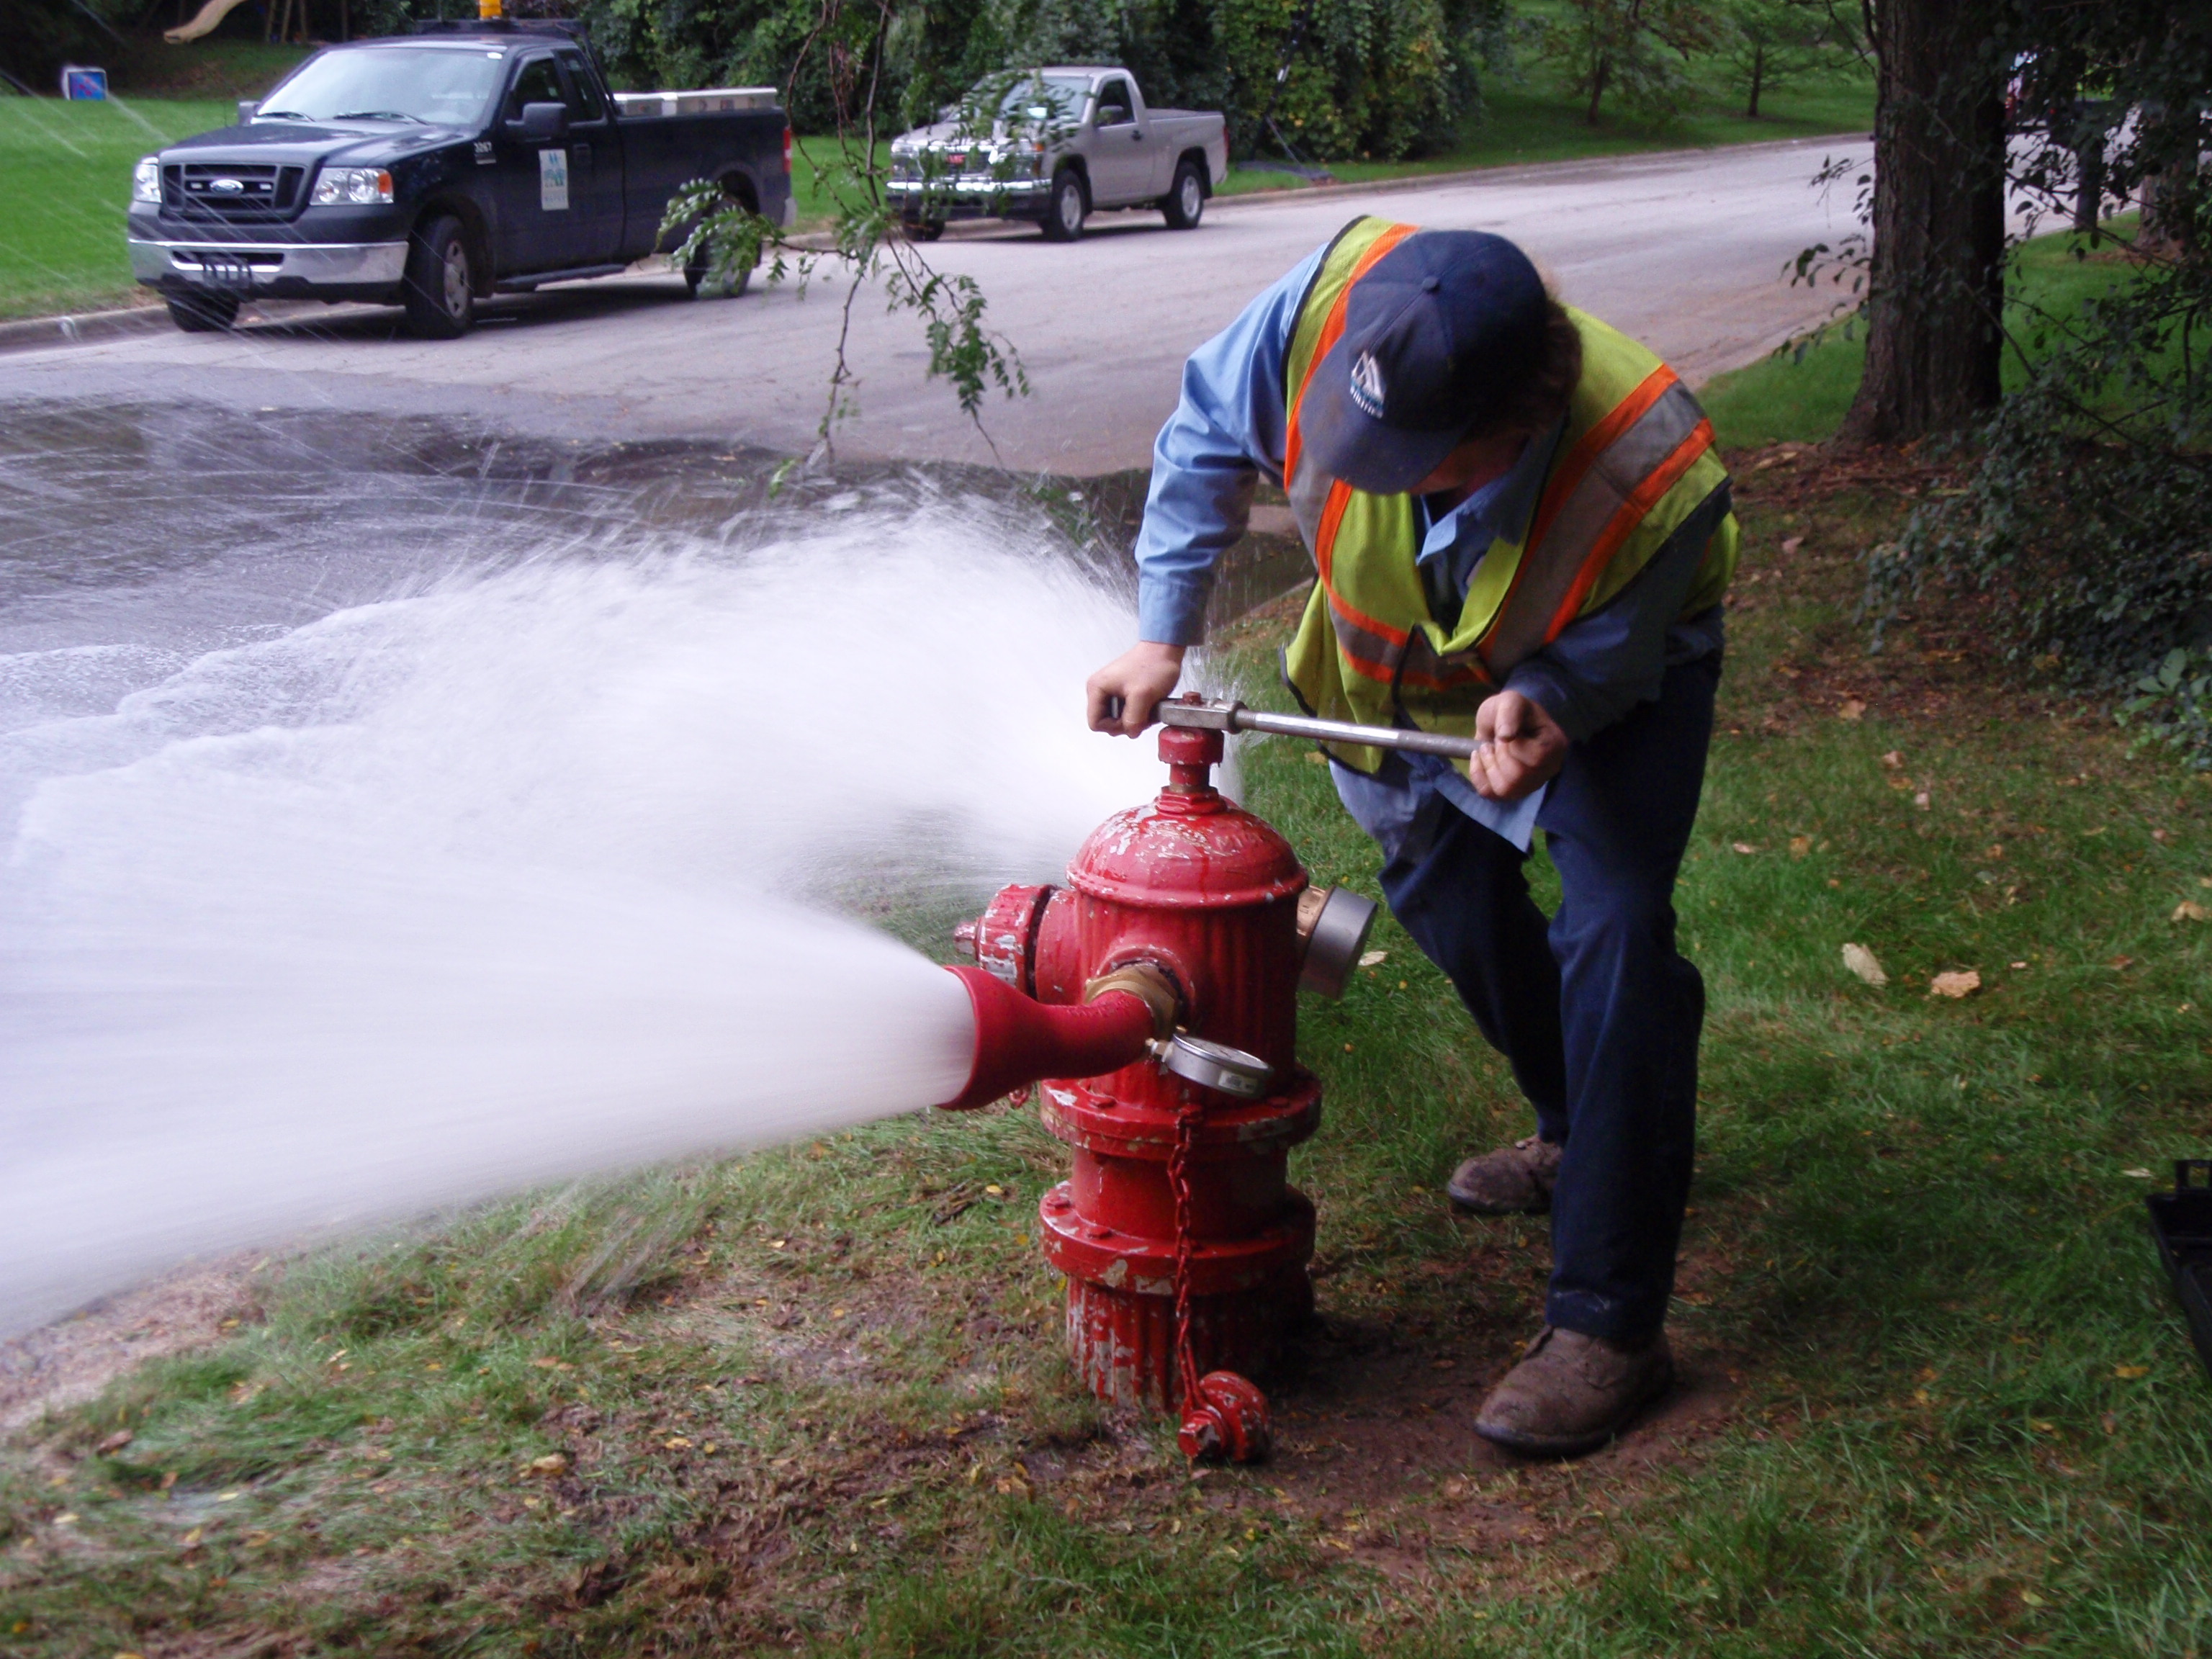 Flow Testing And Hydrant Flushing Begins On Monday